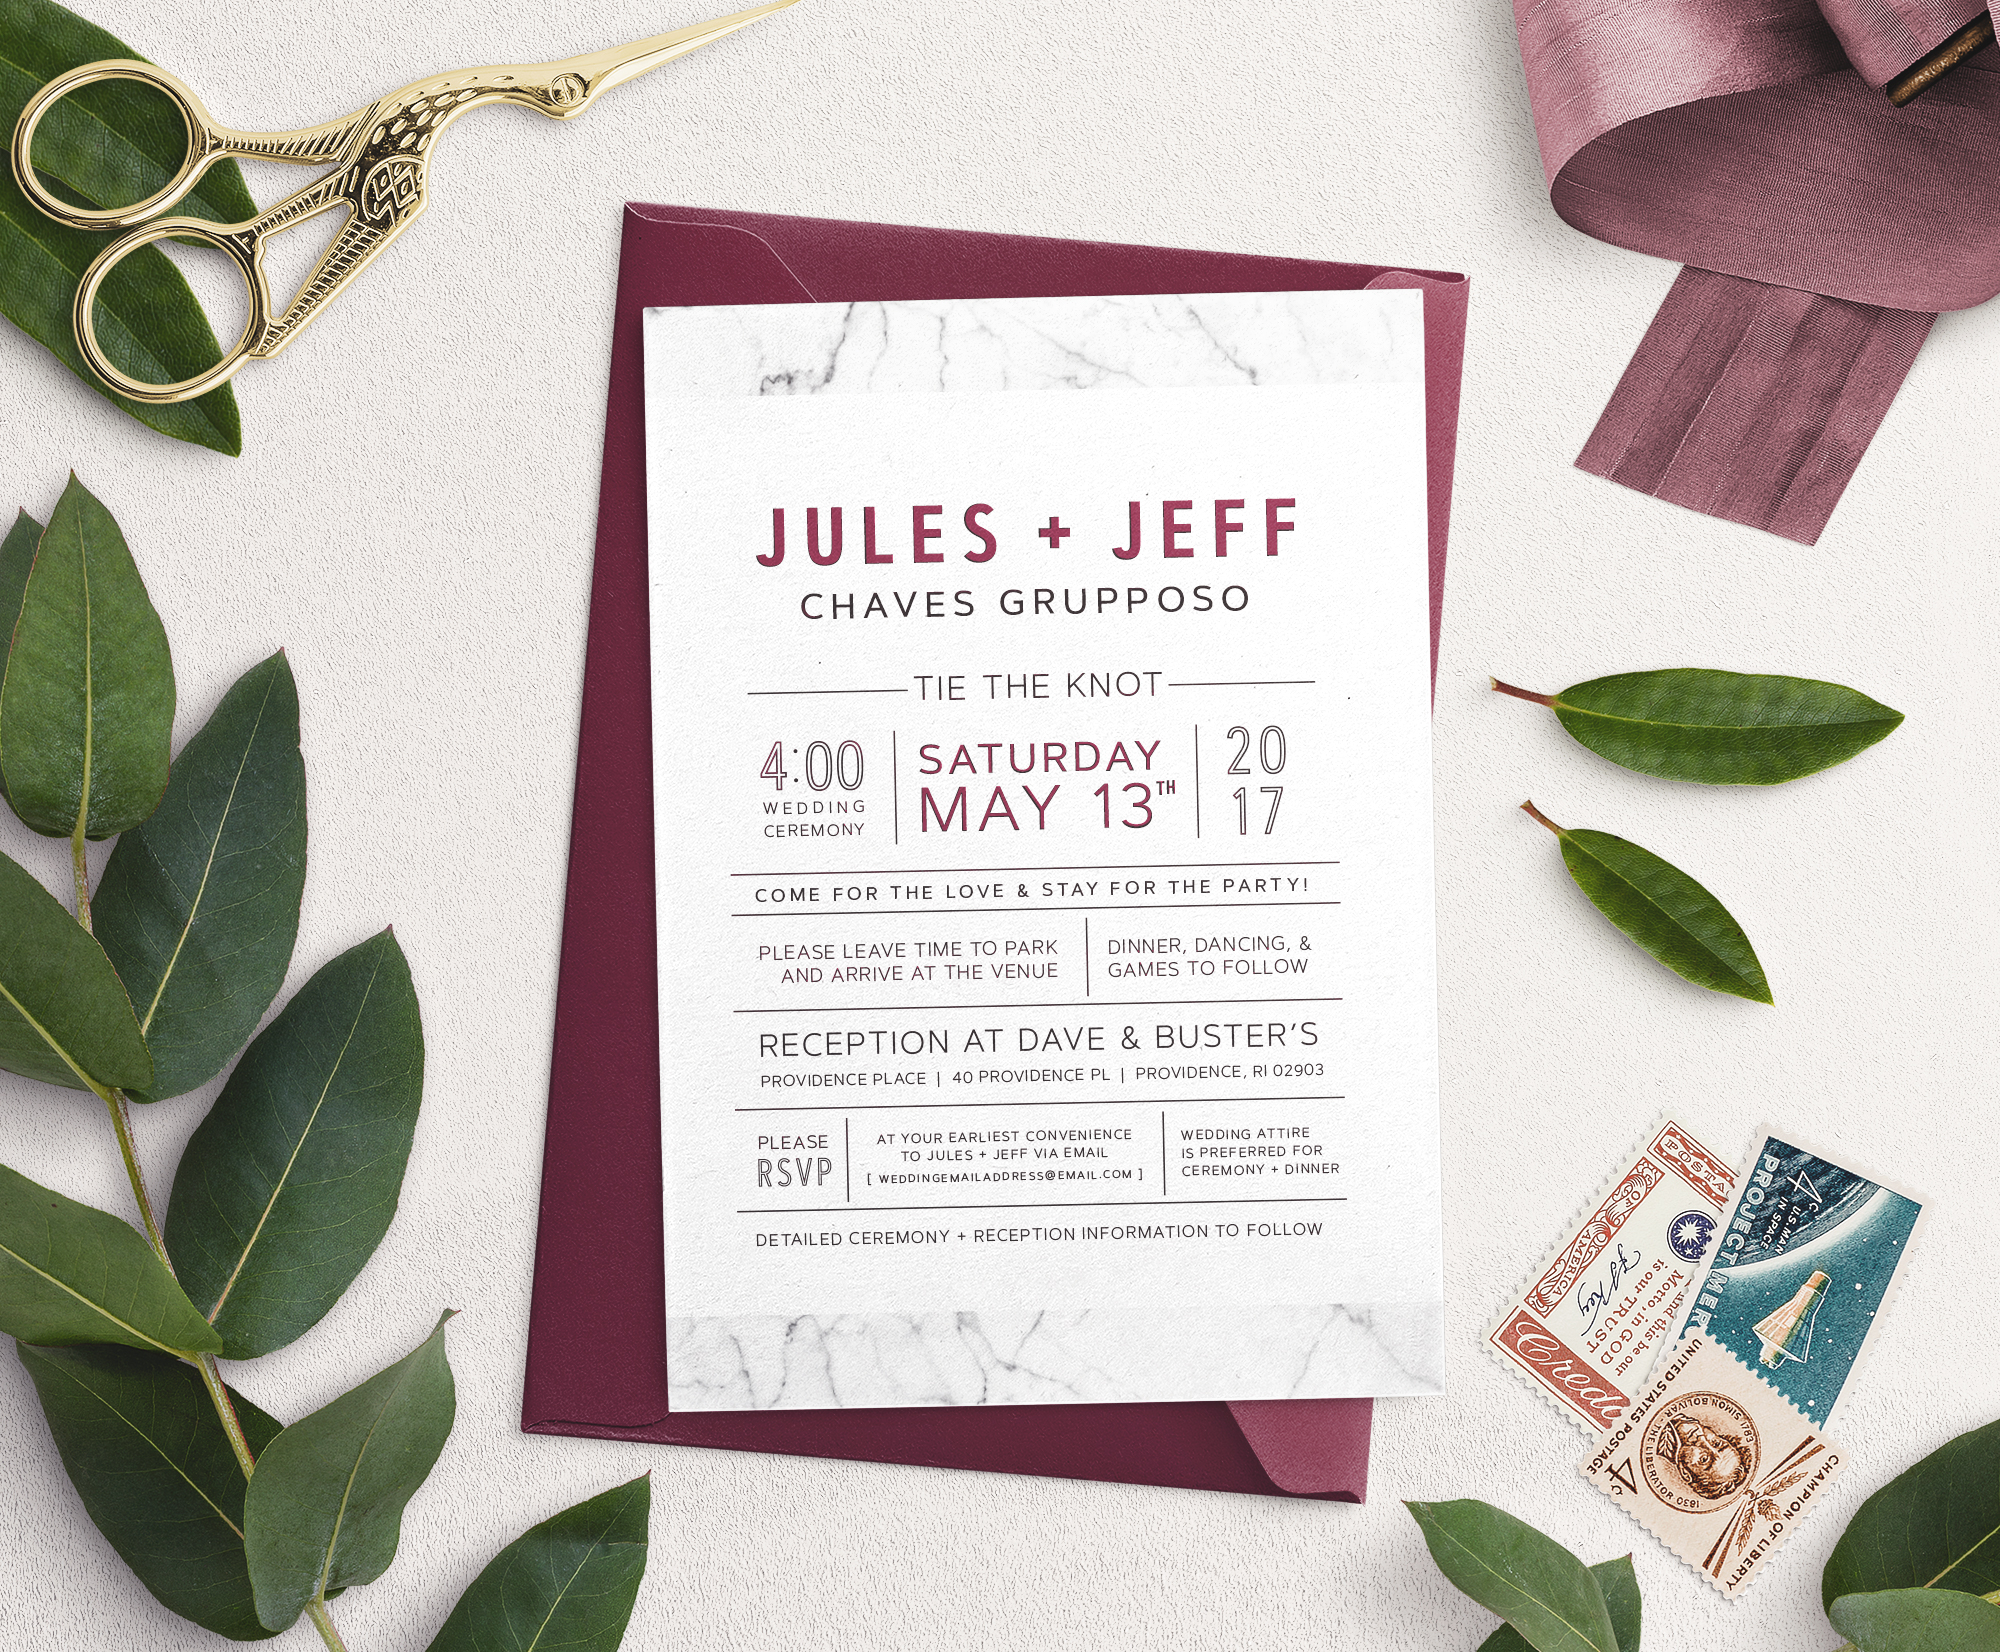 Mockup_WeddingInvite_Julianna_b.jpg